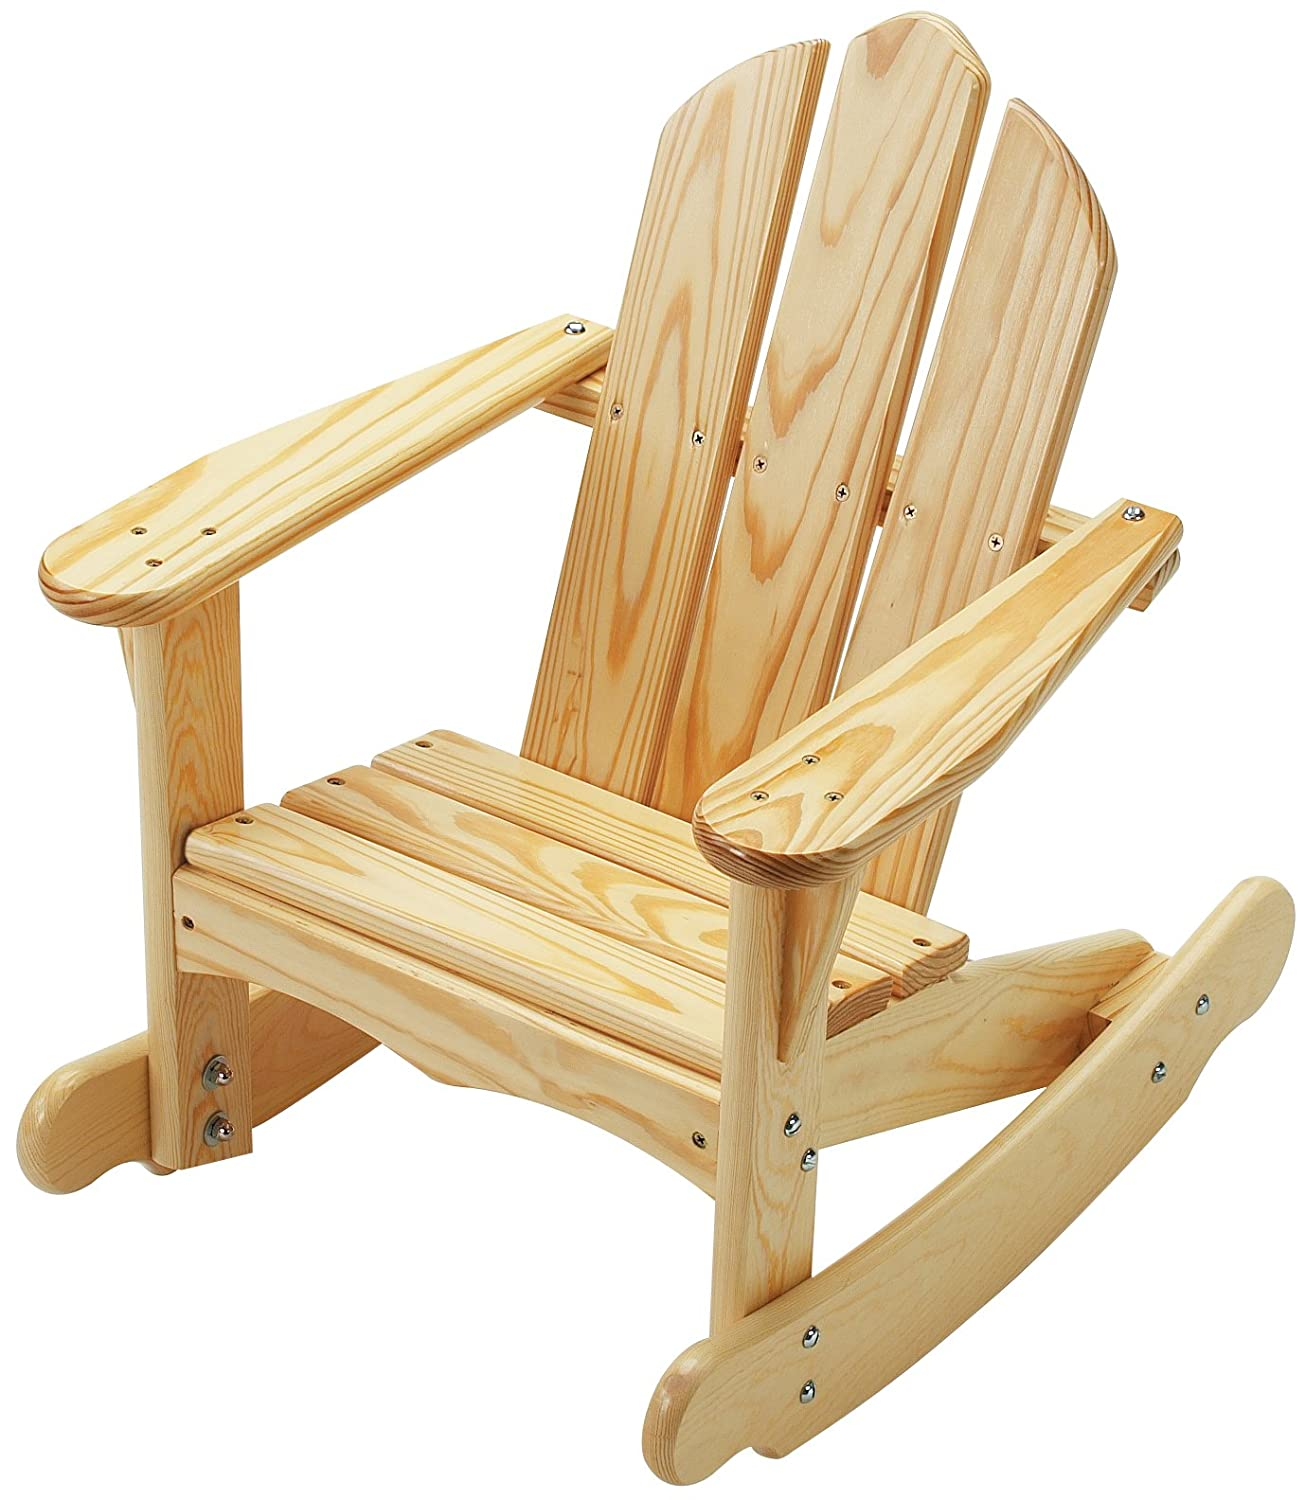 Outstanding Little Colorado Childs Adirondack Rocking Chair Unfinished Lamtechconsult Wood Chair Design Ideas Lamtechconsultcom